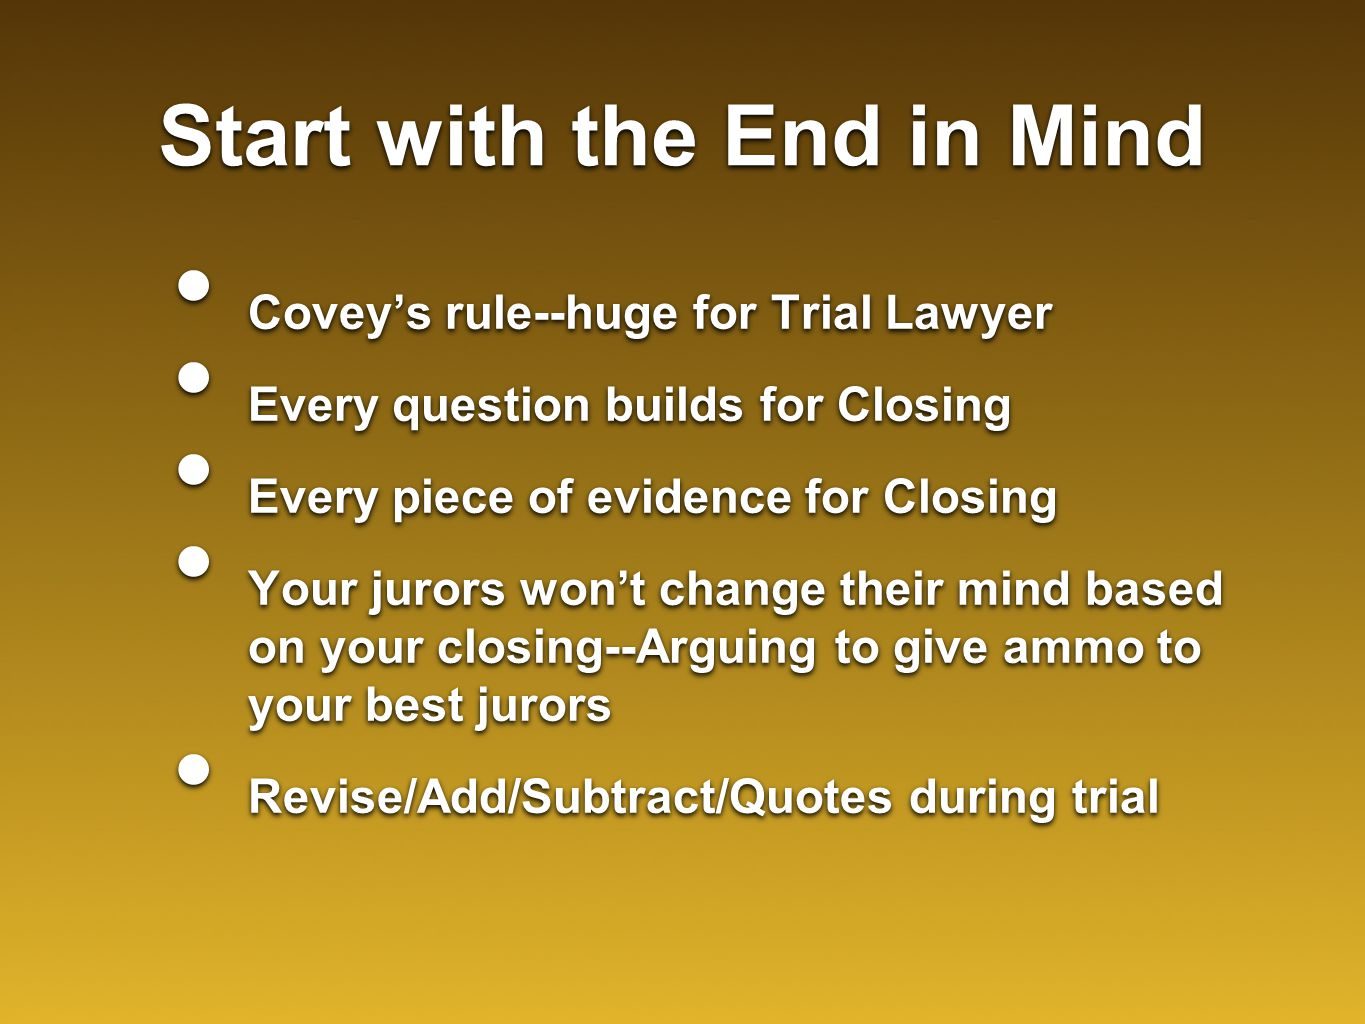 Start with the End in Mind Covey's rule--huge for Trial Lawyer Every question builds for Closing Every piece of evidence for Closing Your jurors won't change their mind based on your closing--Arguing to give ammo to your best jurors Revise/Add/Subtract/Quotes during trial Covey's rule--huge for Trial Lawyer Every question builds for Closing Every piece of evidence for Closing Your jurors won't change their mind based on your closing--Arguing to give ammo to your best jurors Revise/Add/Subtract/Quotes during trial